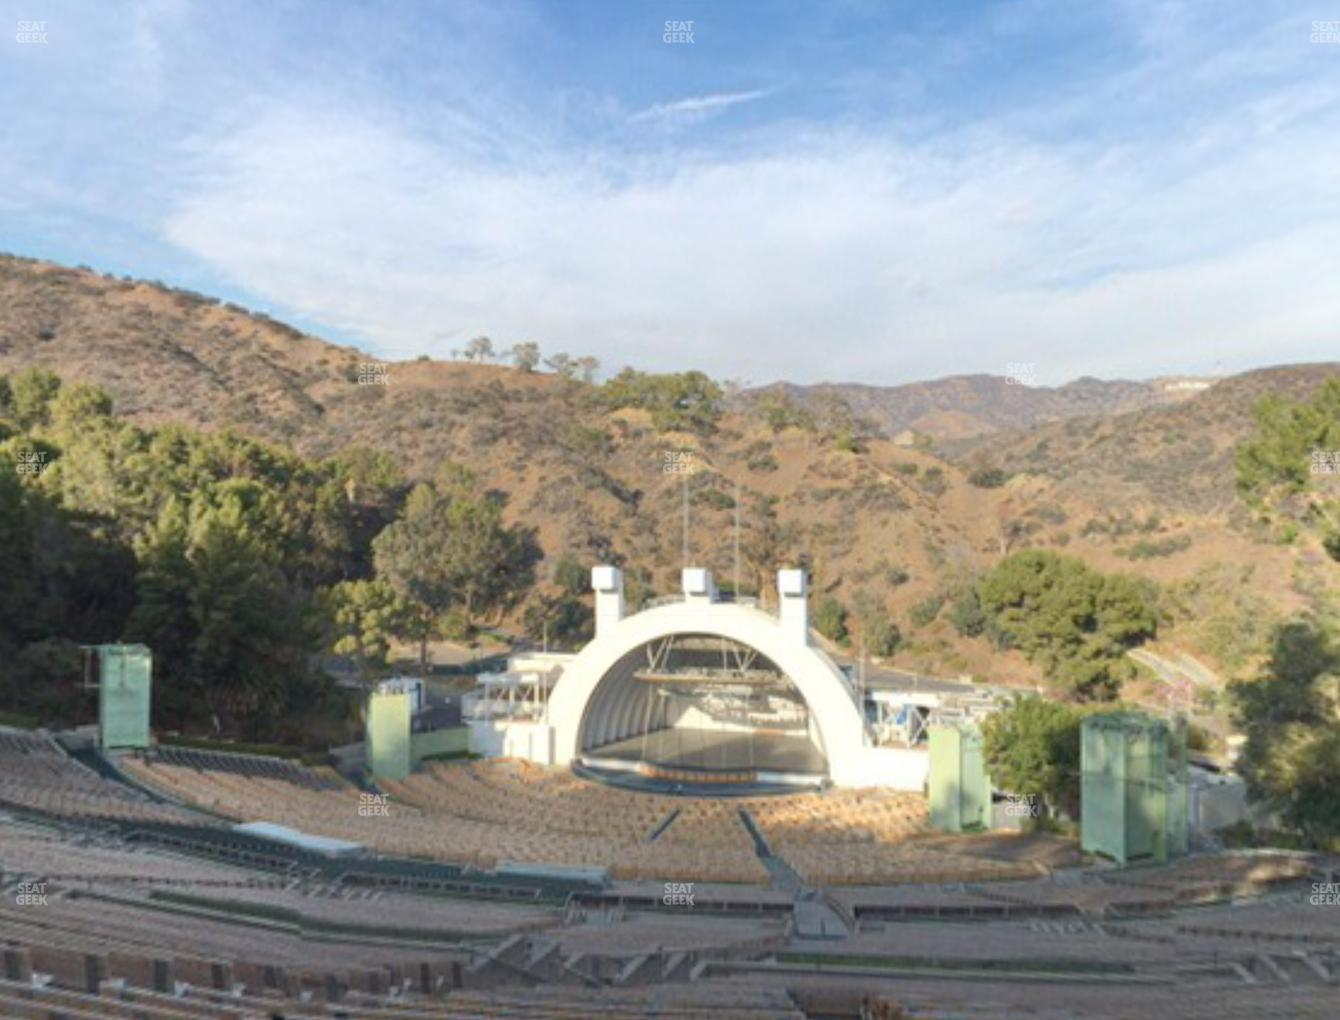 Concert at Hollywood Bowl Section V 2 View